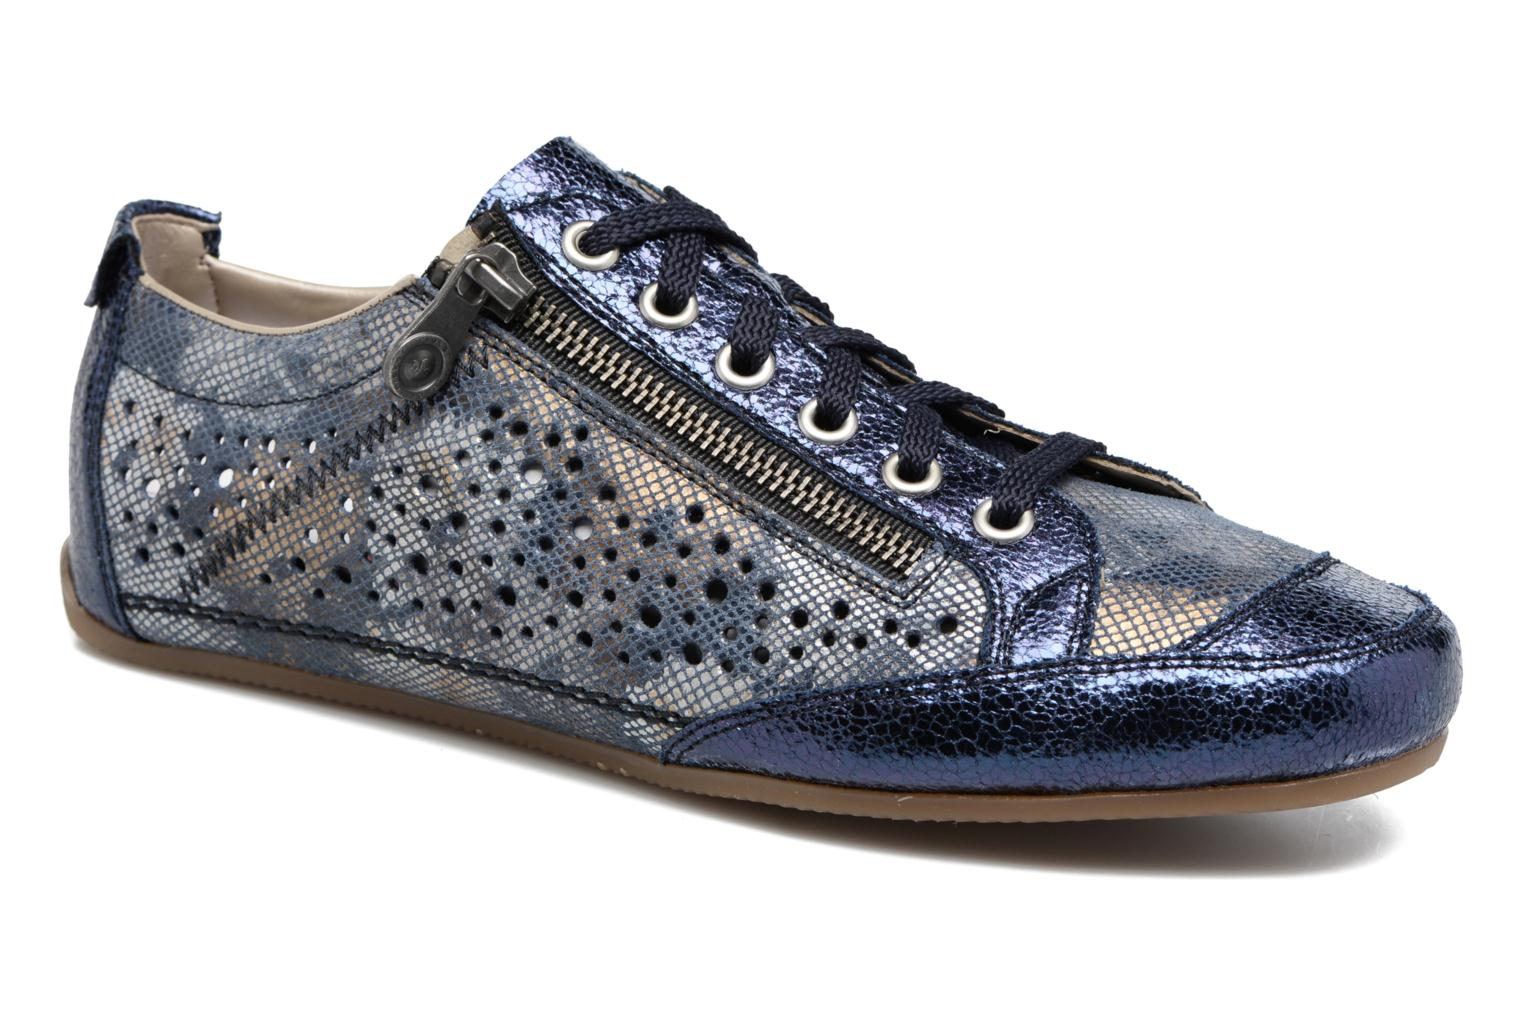 Wim 57715 Royal/Blau-Metallic